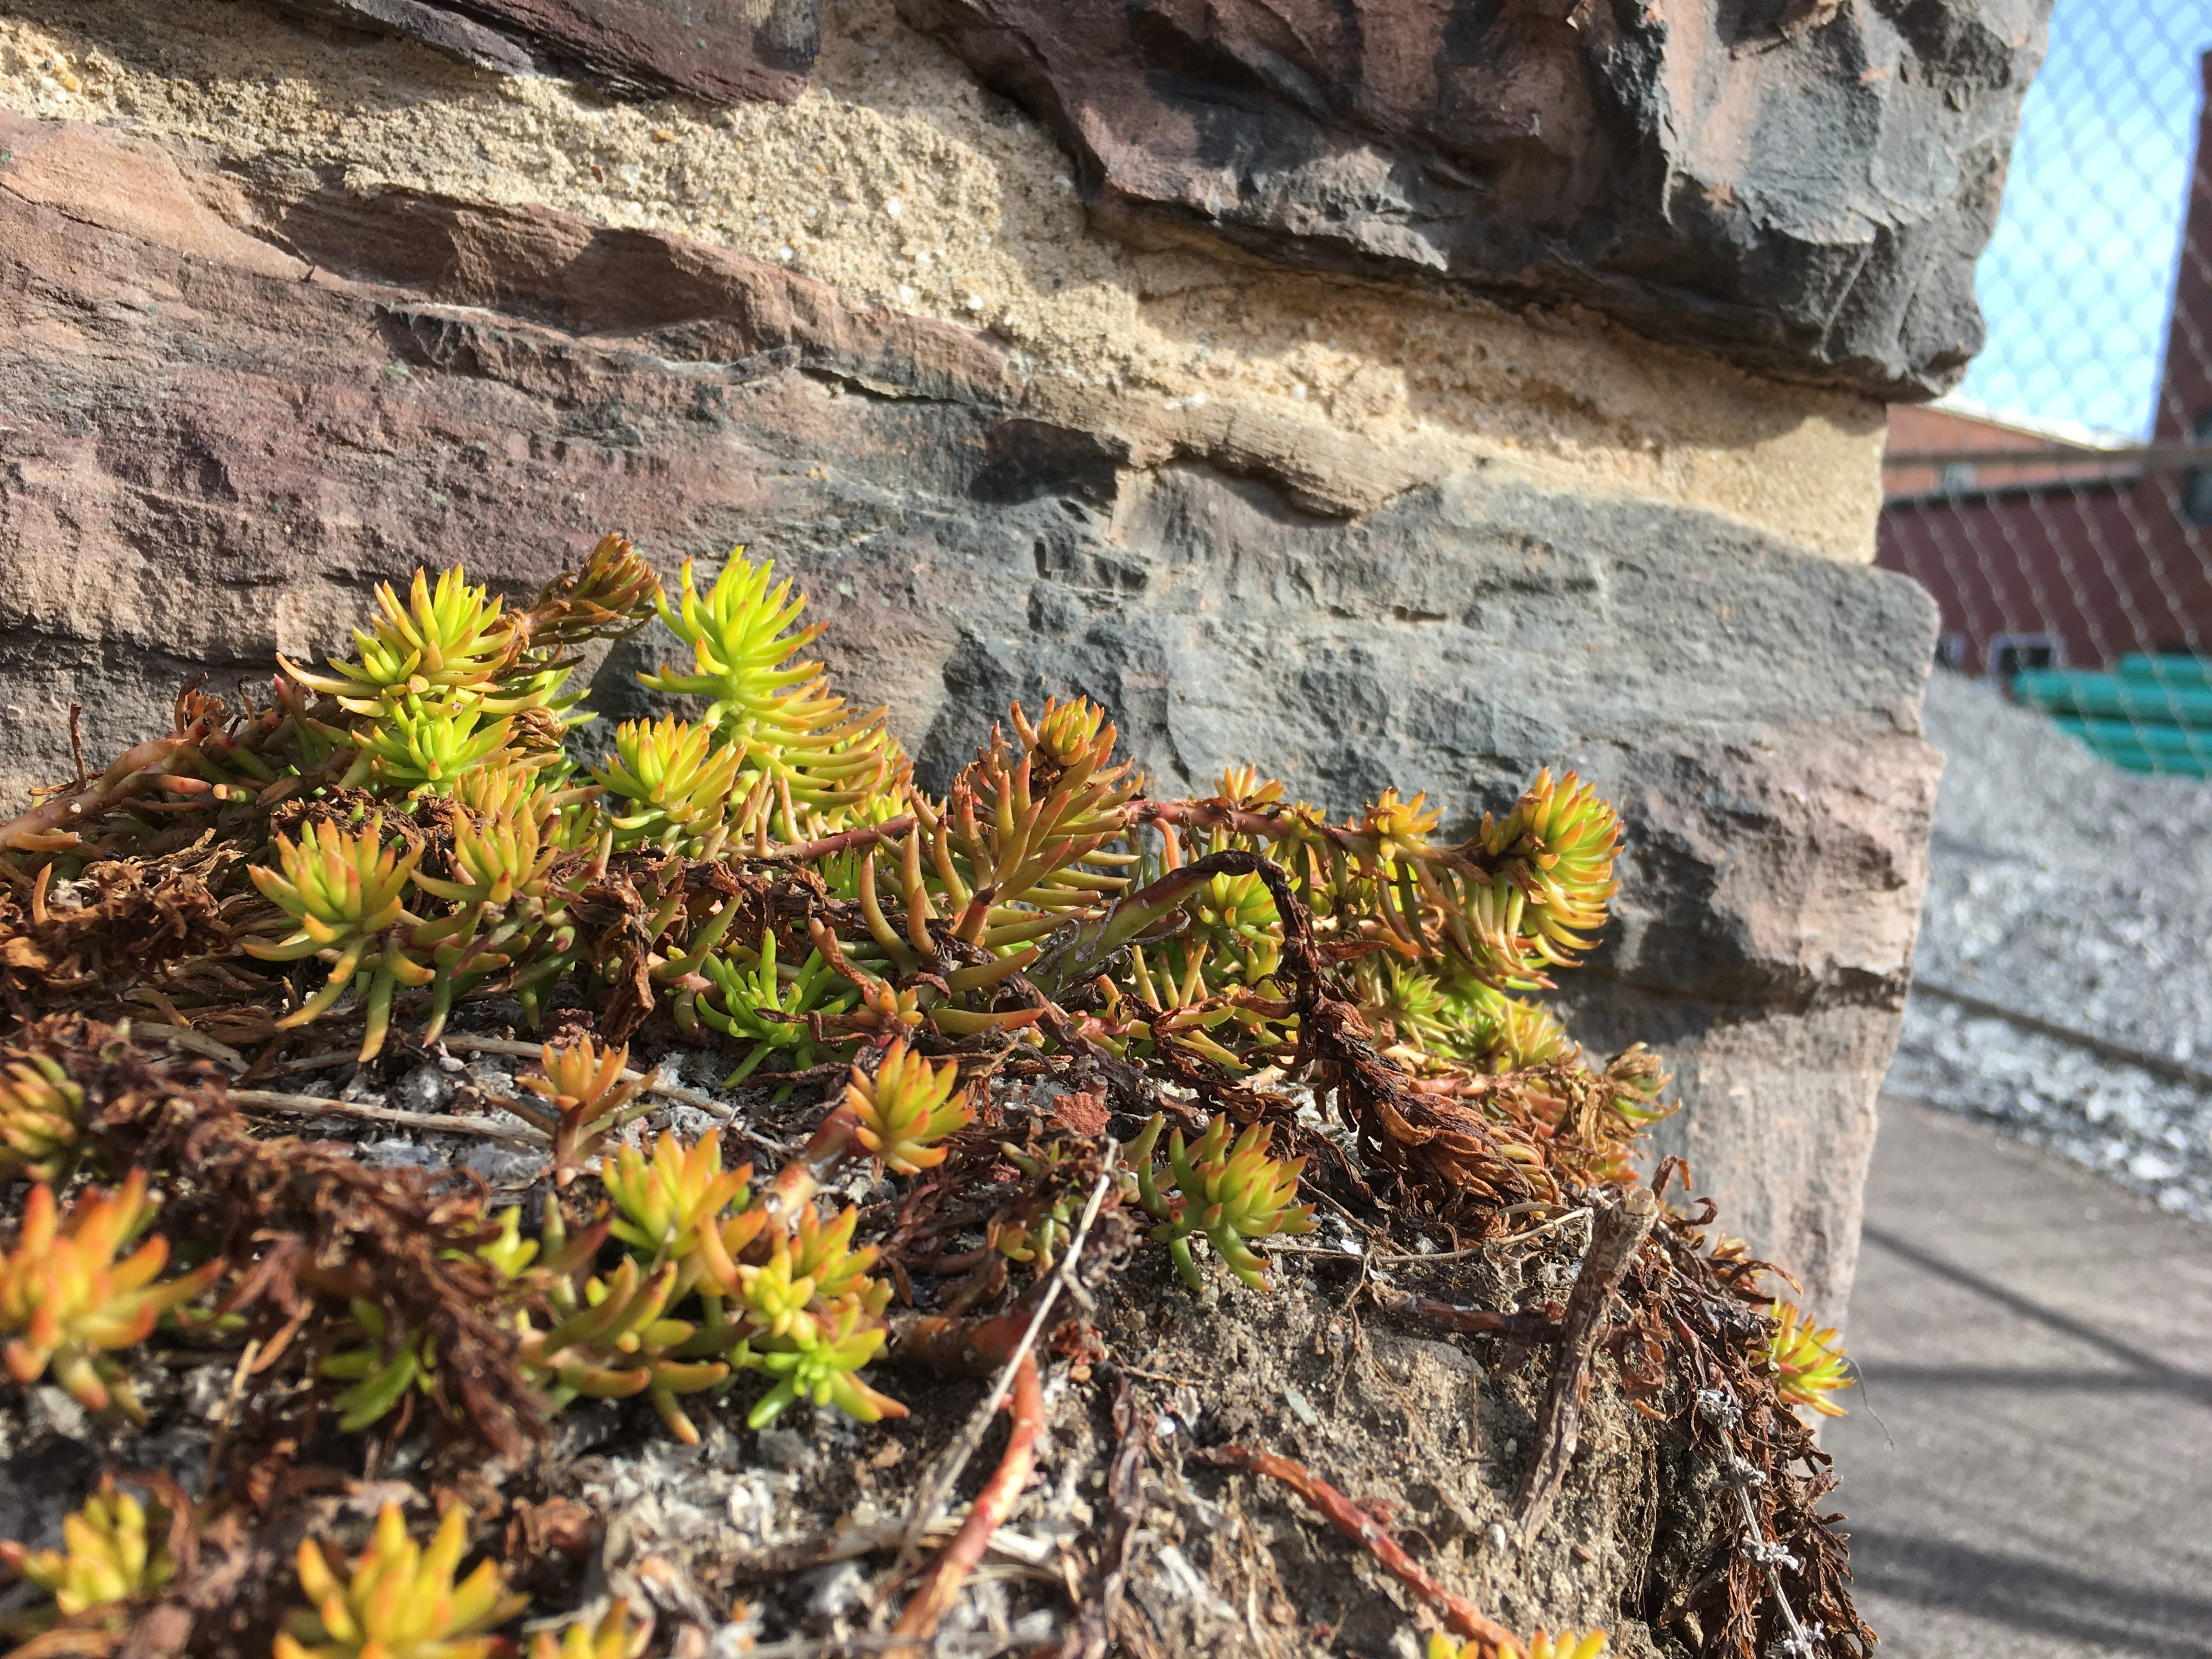 Sedum revives at a sun-drenched corner of King and St. Paul streets in Burlington on Sunday, April 14, 2019.